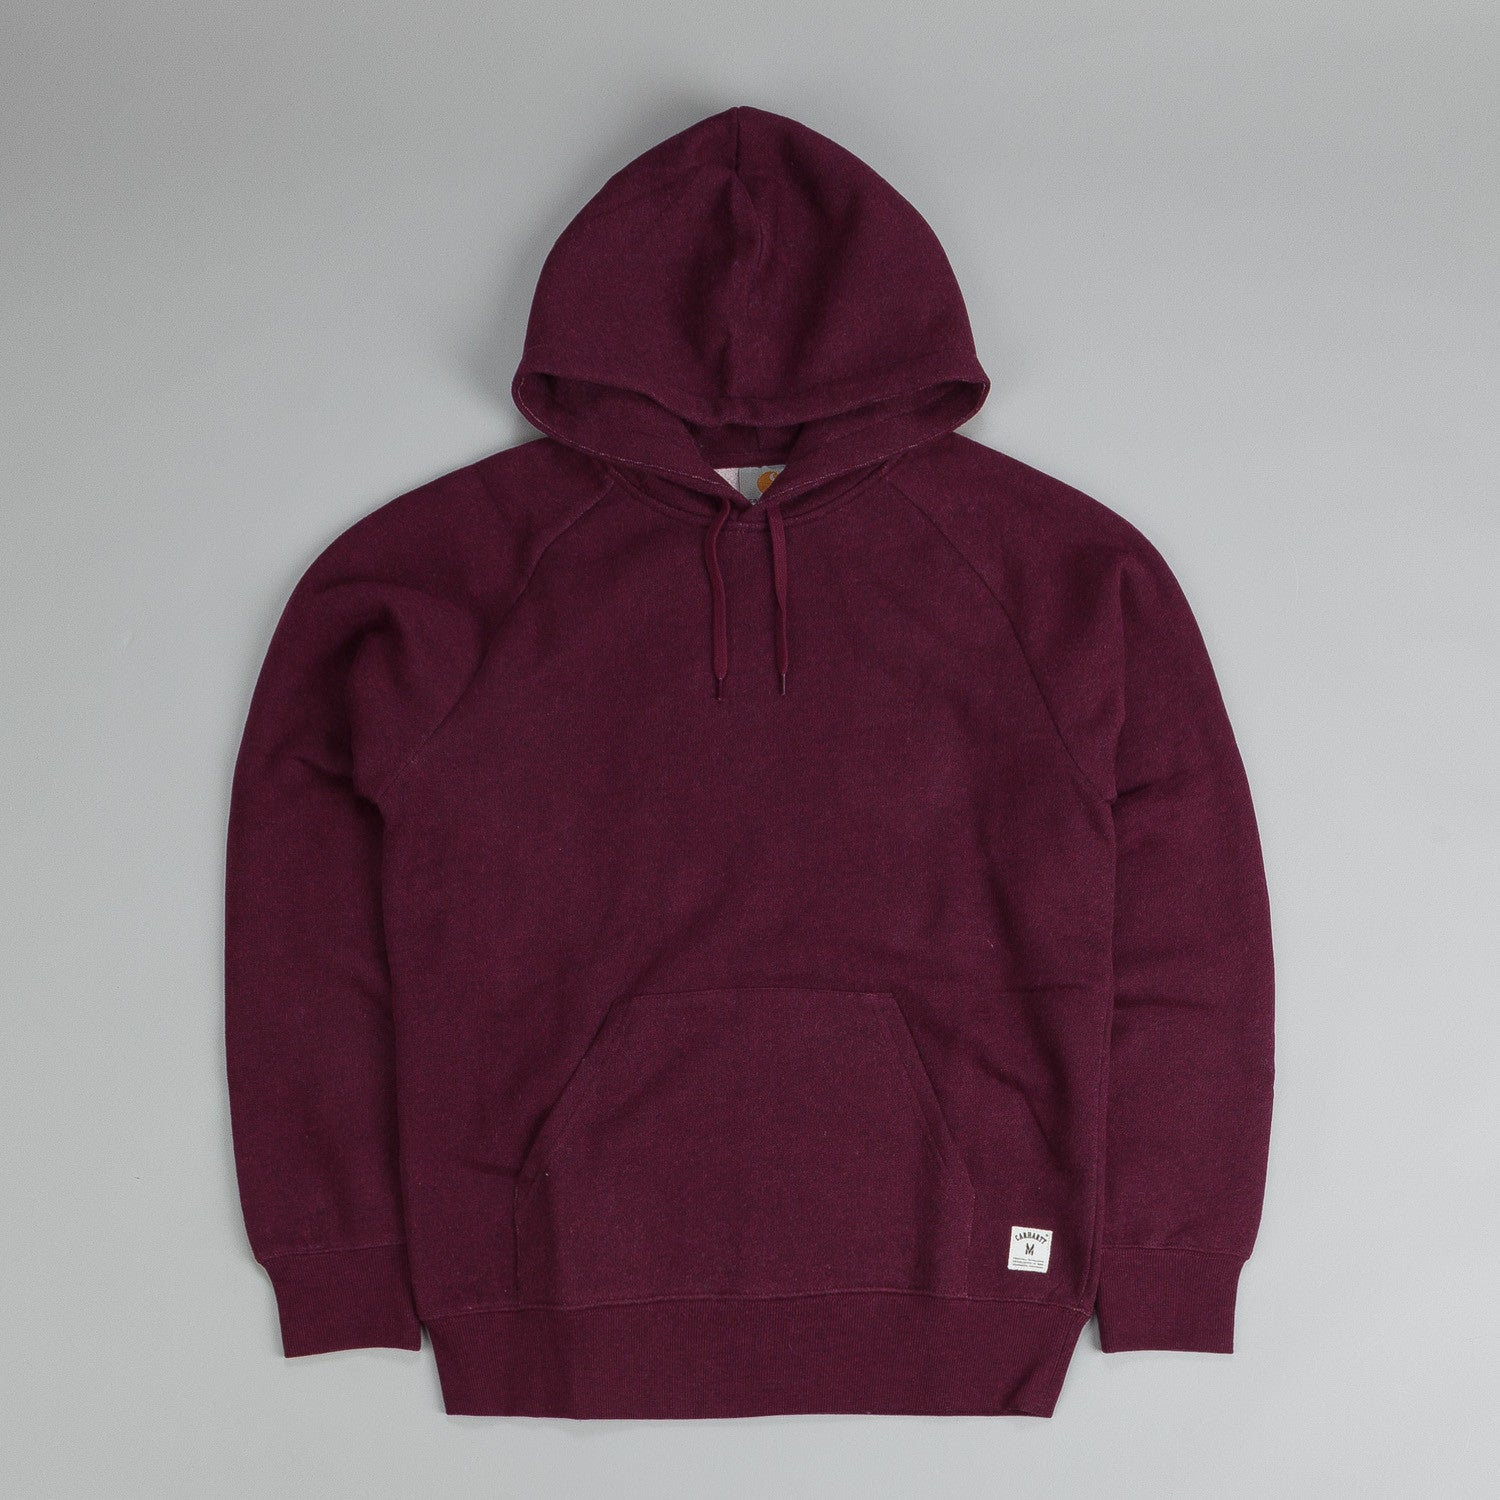 Carhartt Holbrook Hooded Sweatshirt Bordeaux Heather